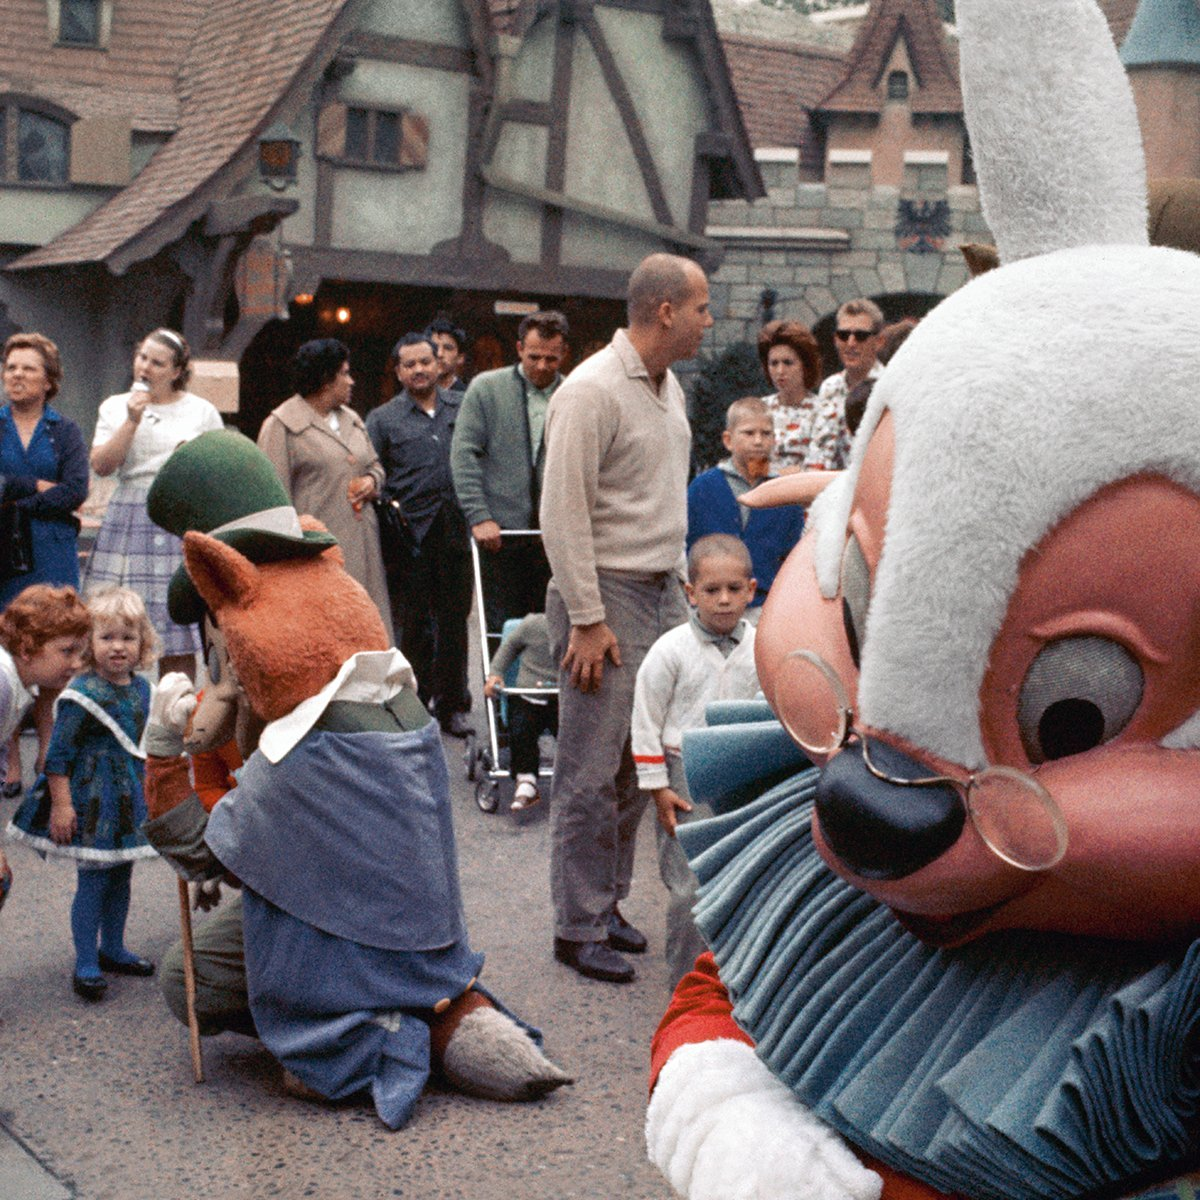 """Slide 3 of 19: Characters from some of Disney's early films—like the White Rabbit from Alice in Wonderland and the mischievous """"Honest John"""" from Pinocchio—entertain visitors in Fantasyland. Here are some Disney recipes you can recreate at home."""